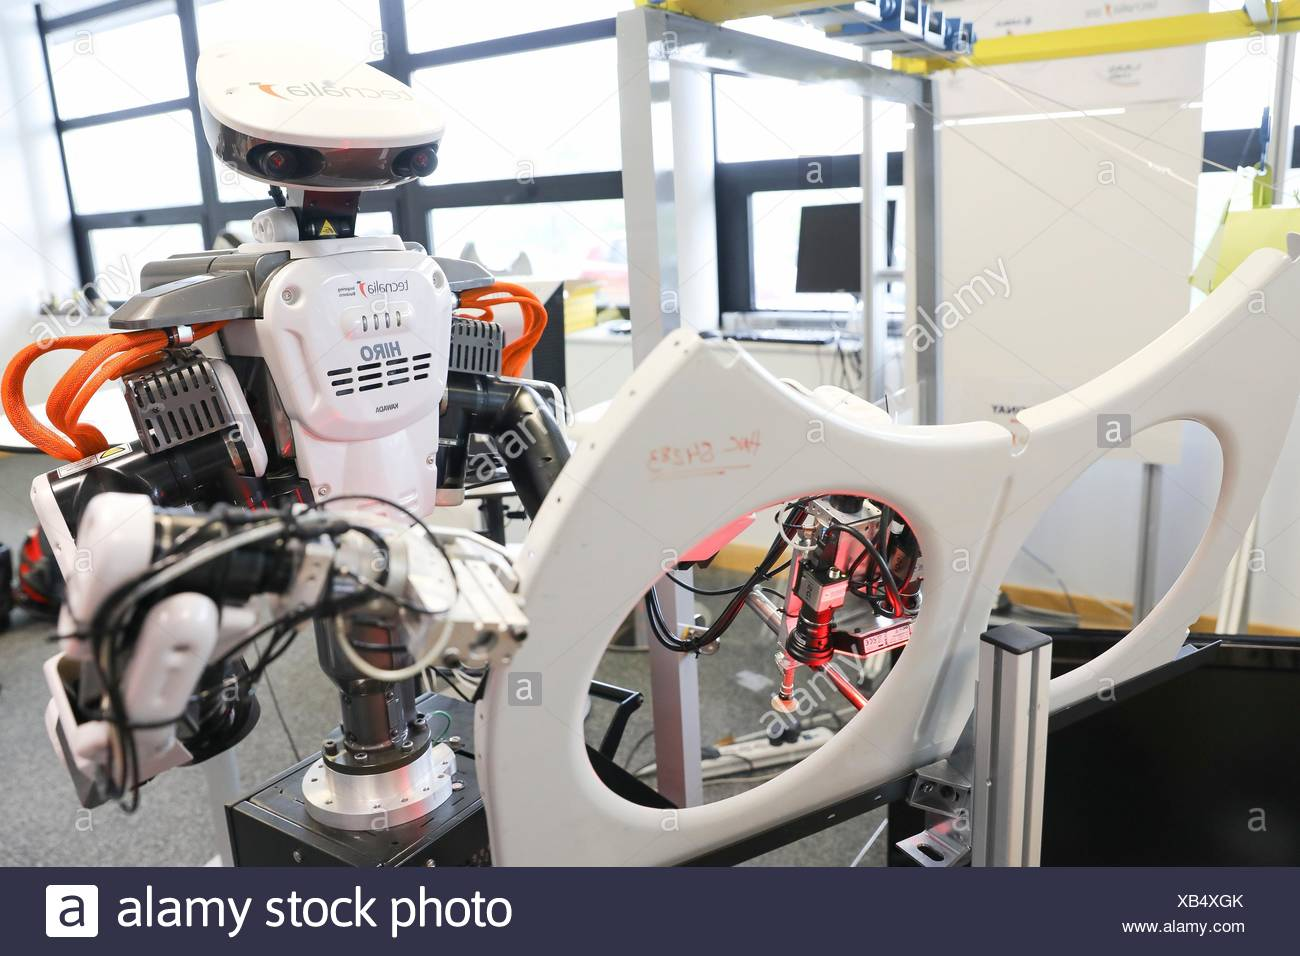 Robot with two arms for flexible robotics. Humanoid robot for automotive assembly tasks in collaboration with people, Industry, Tecnalia Research & - Stock Image